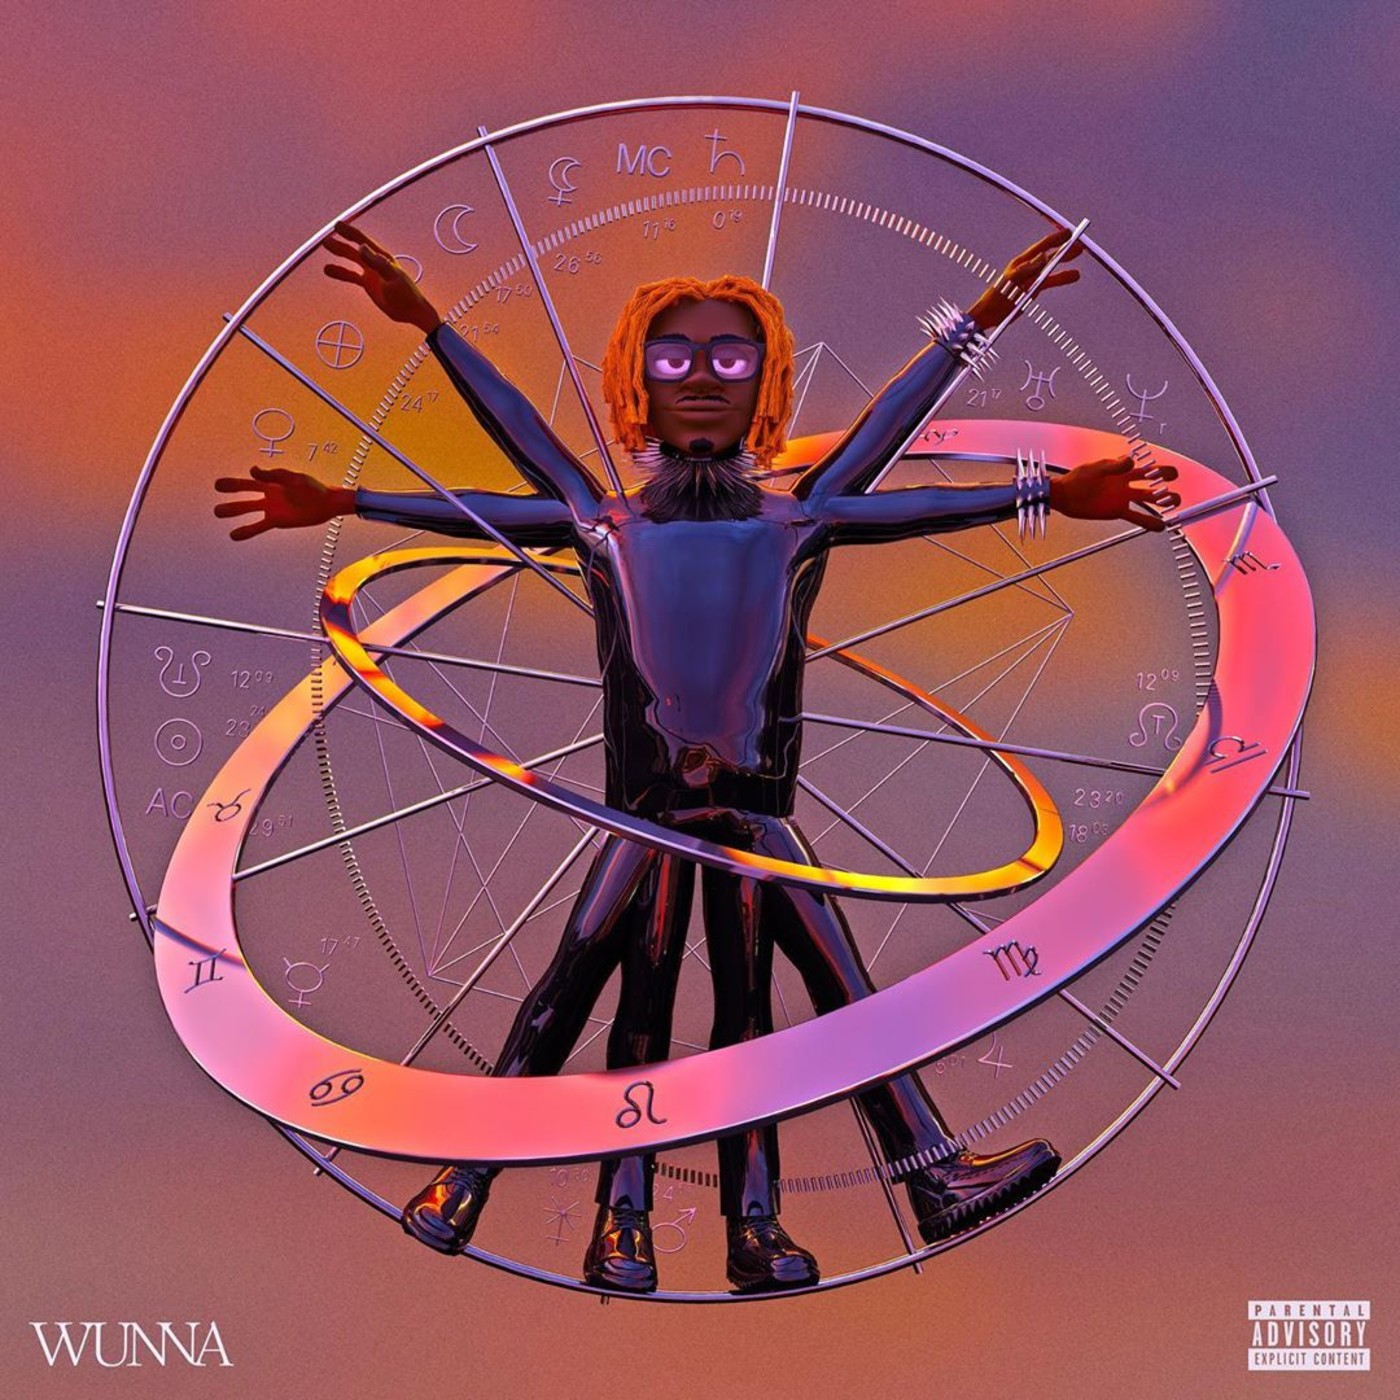 Gunna Reveals Tracklist and Cover Art for New Album 'WUNNA' | Complex